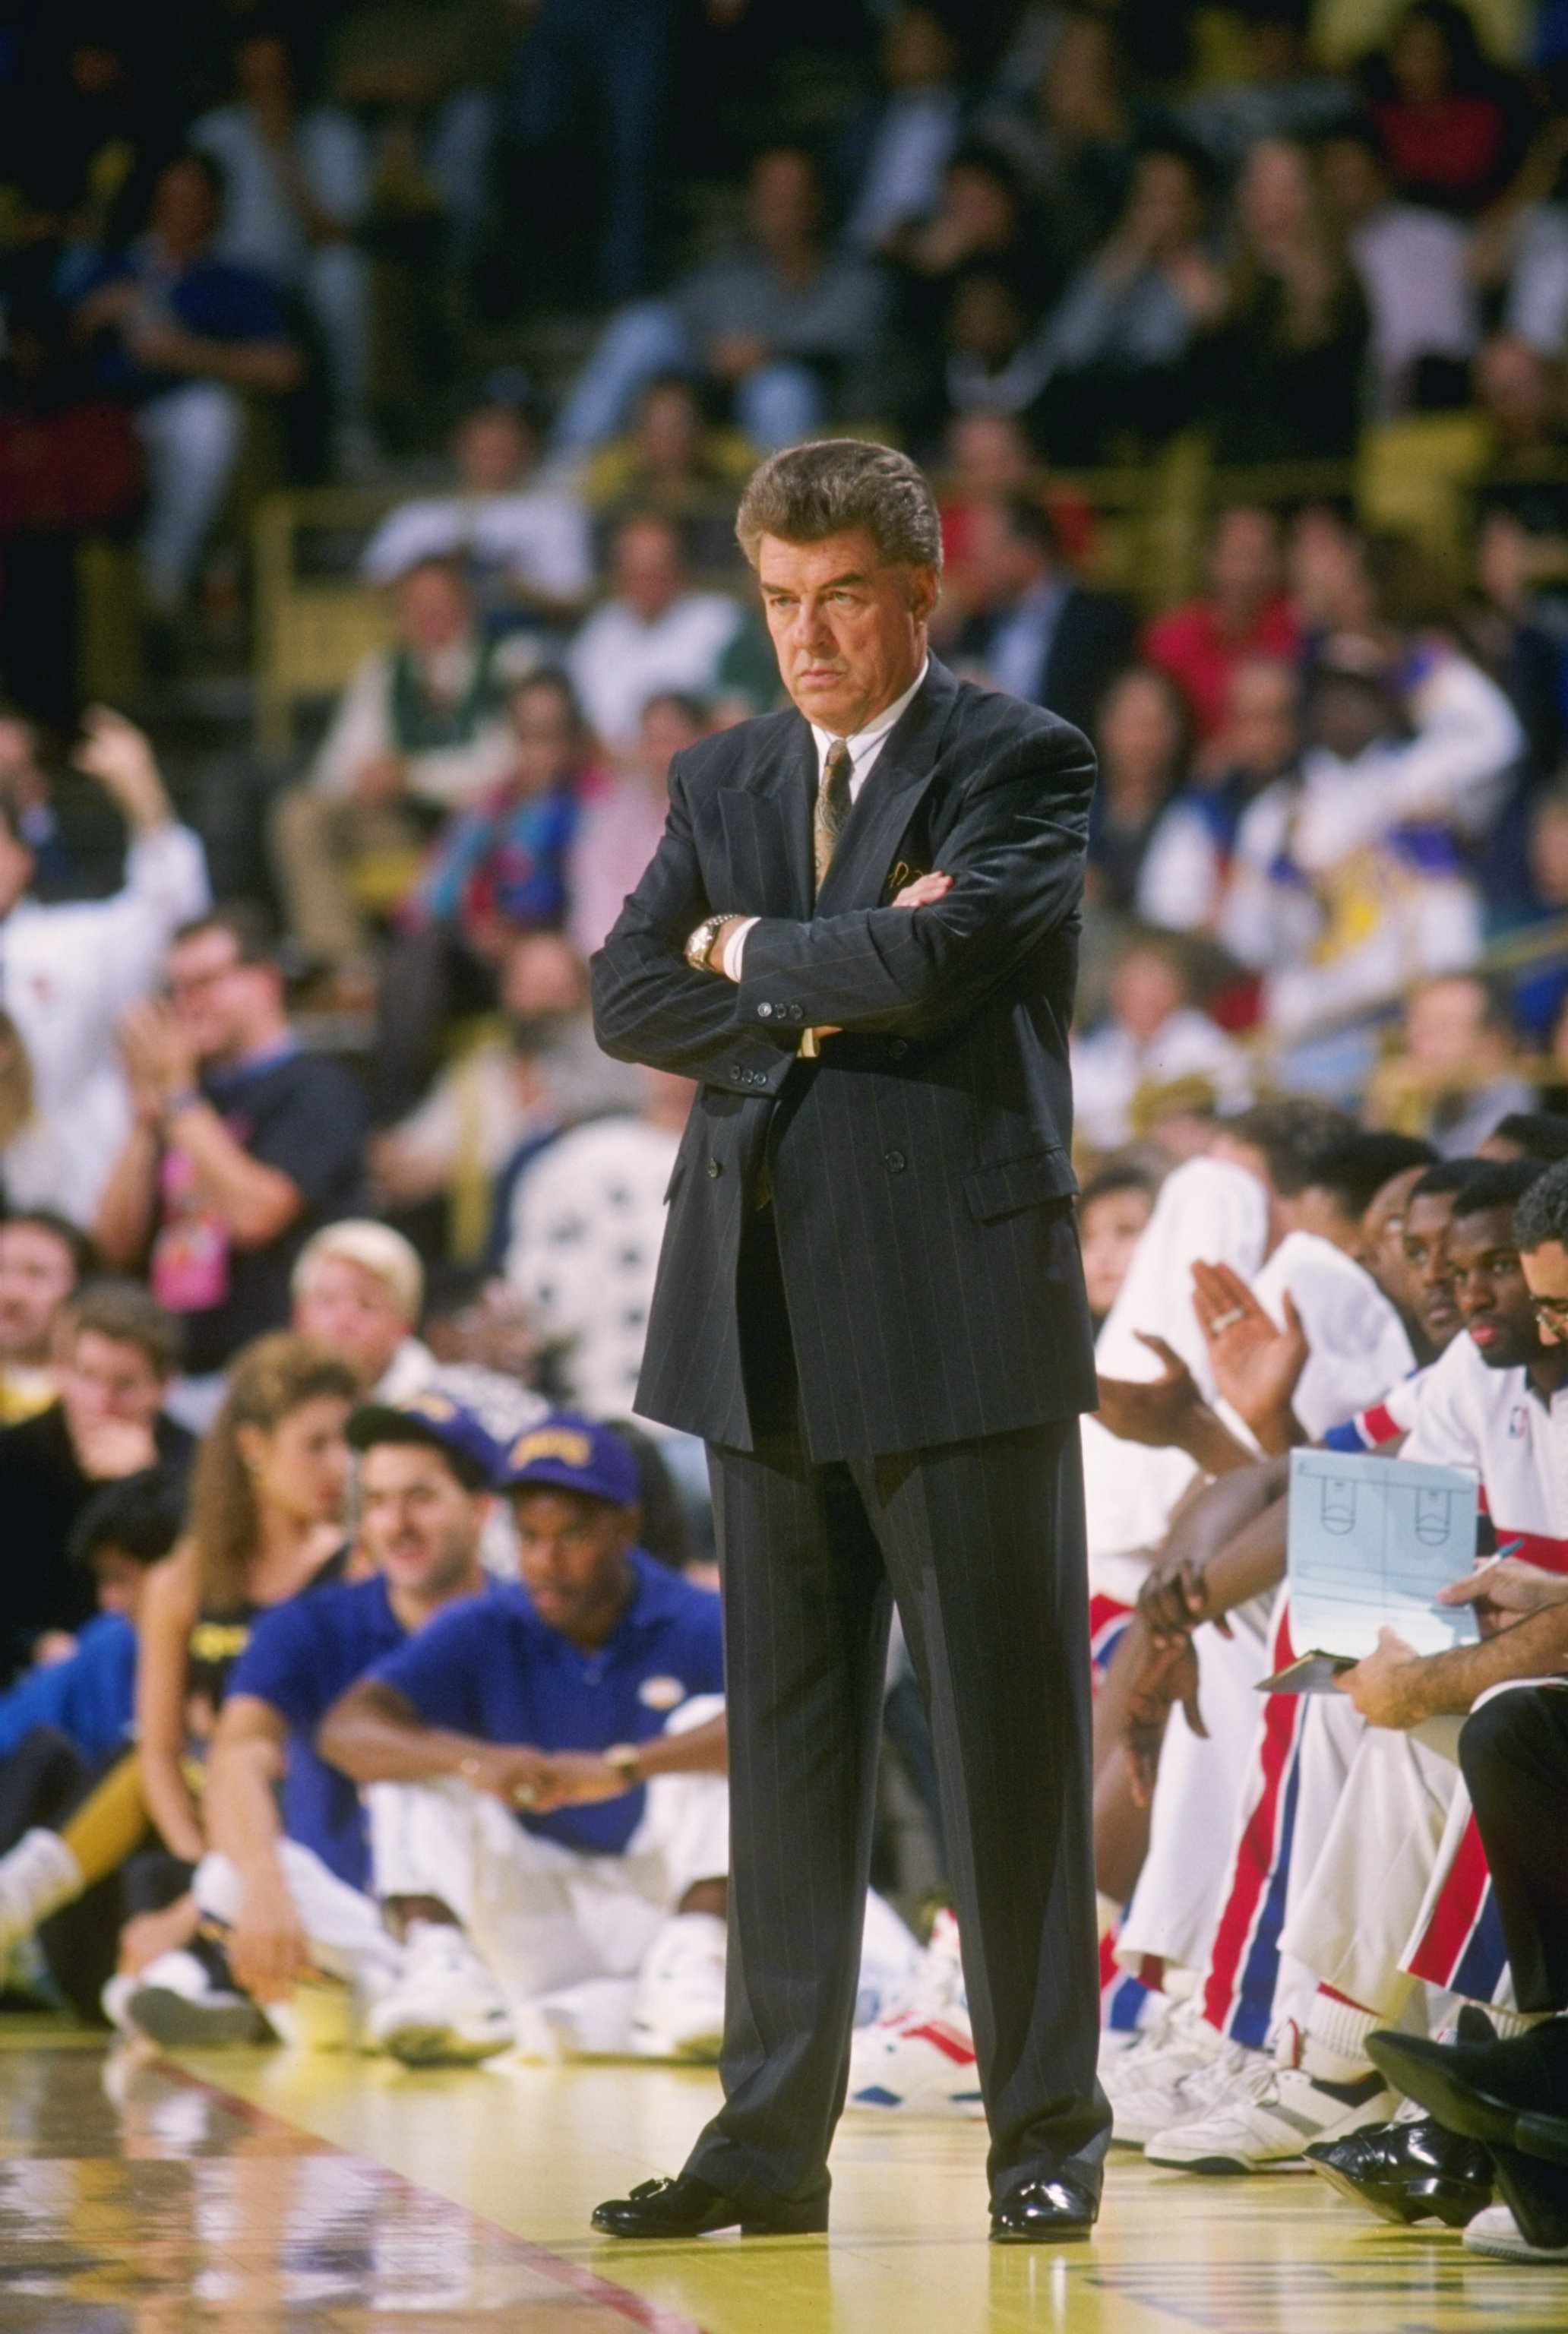 1989:  Head coach Chuck Daly of the Detroit Pistons stands on the sidelines during a game. Mandatory Credit: Mike Powell  /Allsport